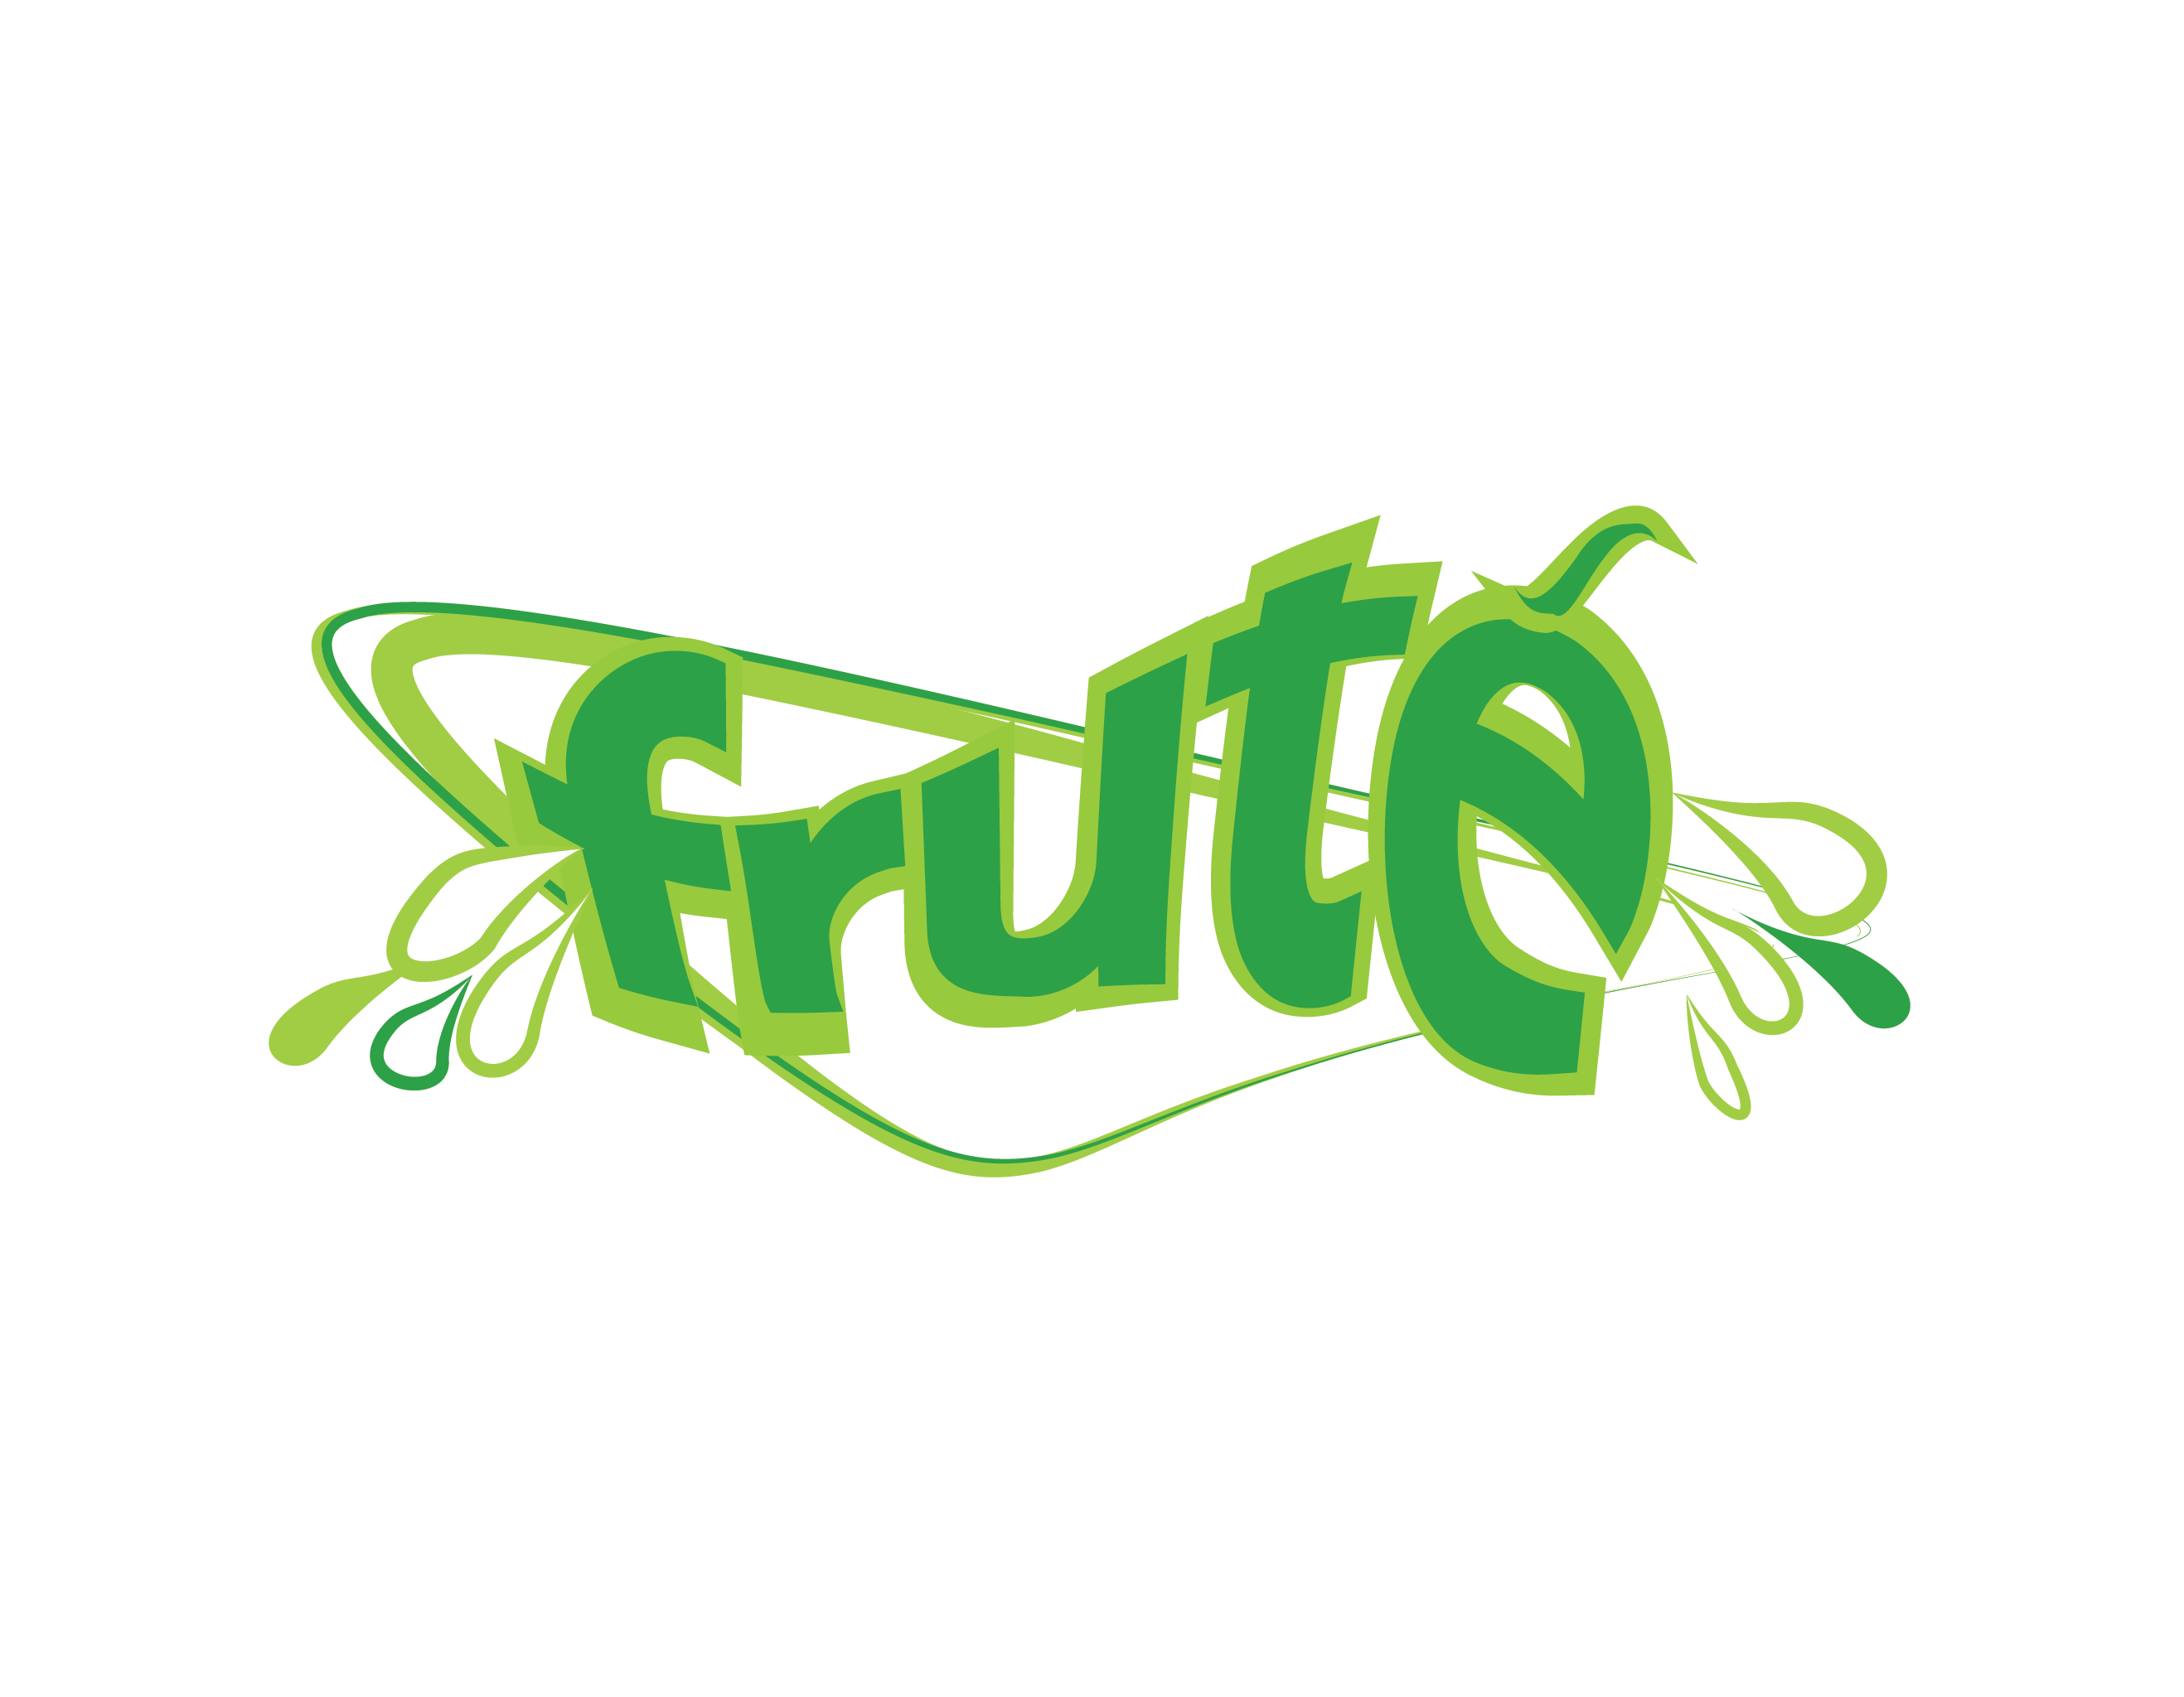 Logo Design by Tim Holley - Entry No. 66 in the Logo Design Contest Imaginative Logo Design for Fruté.